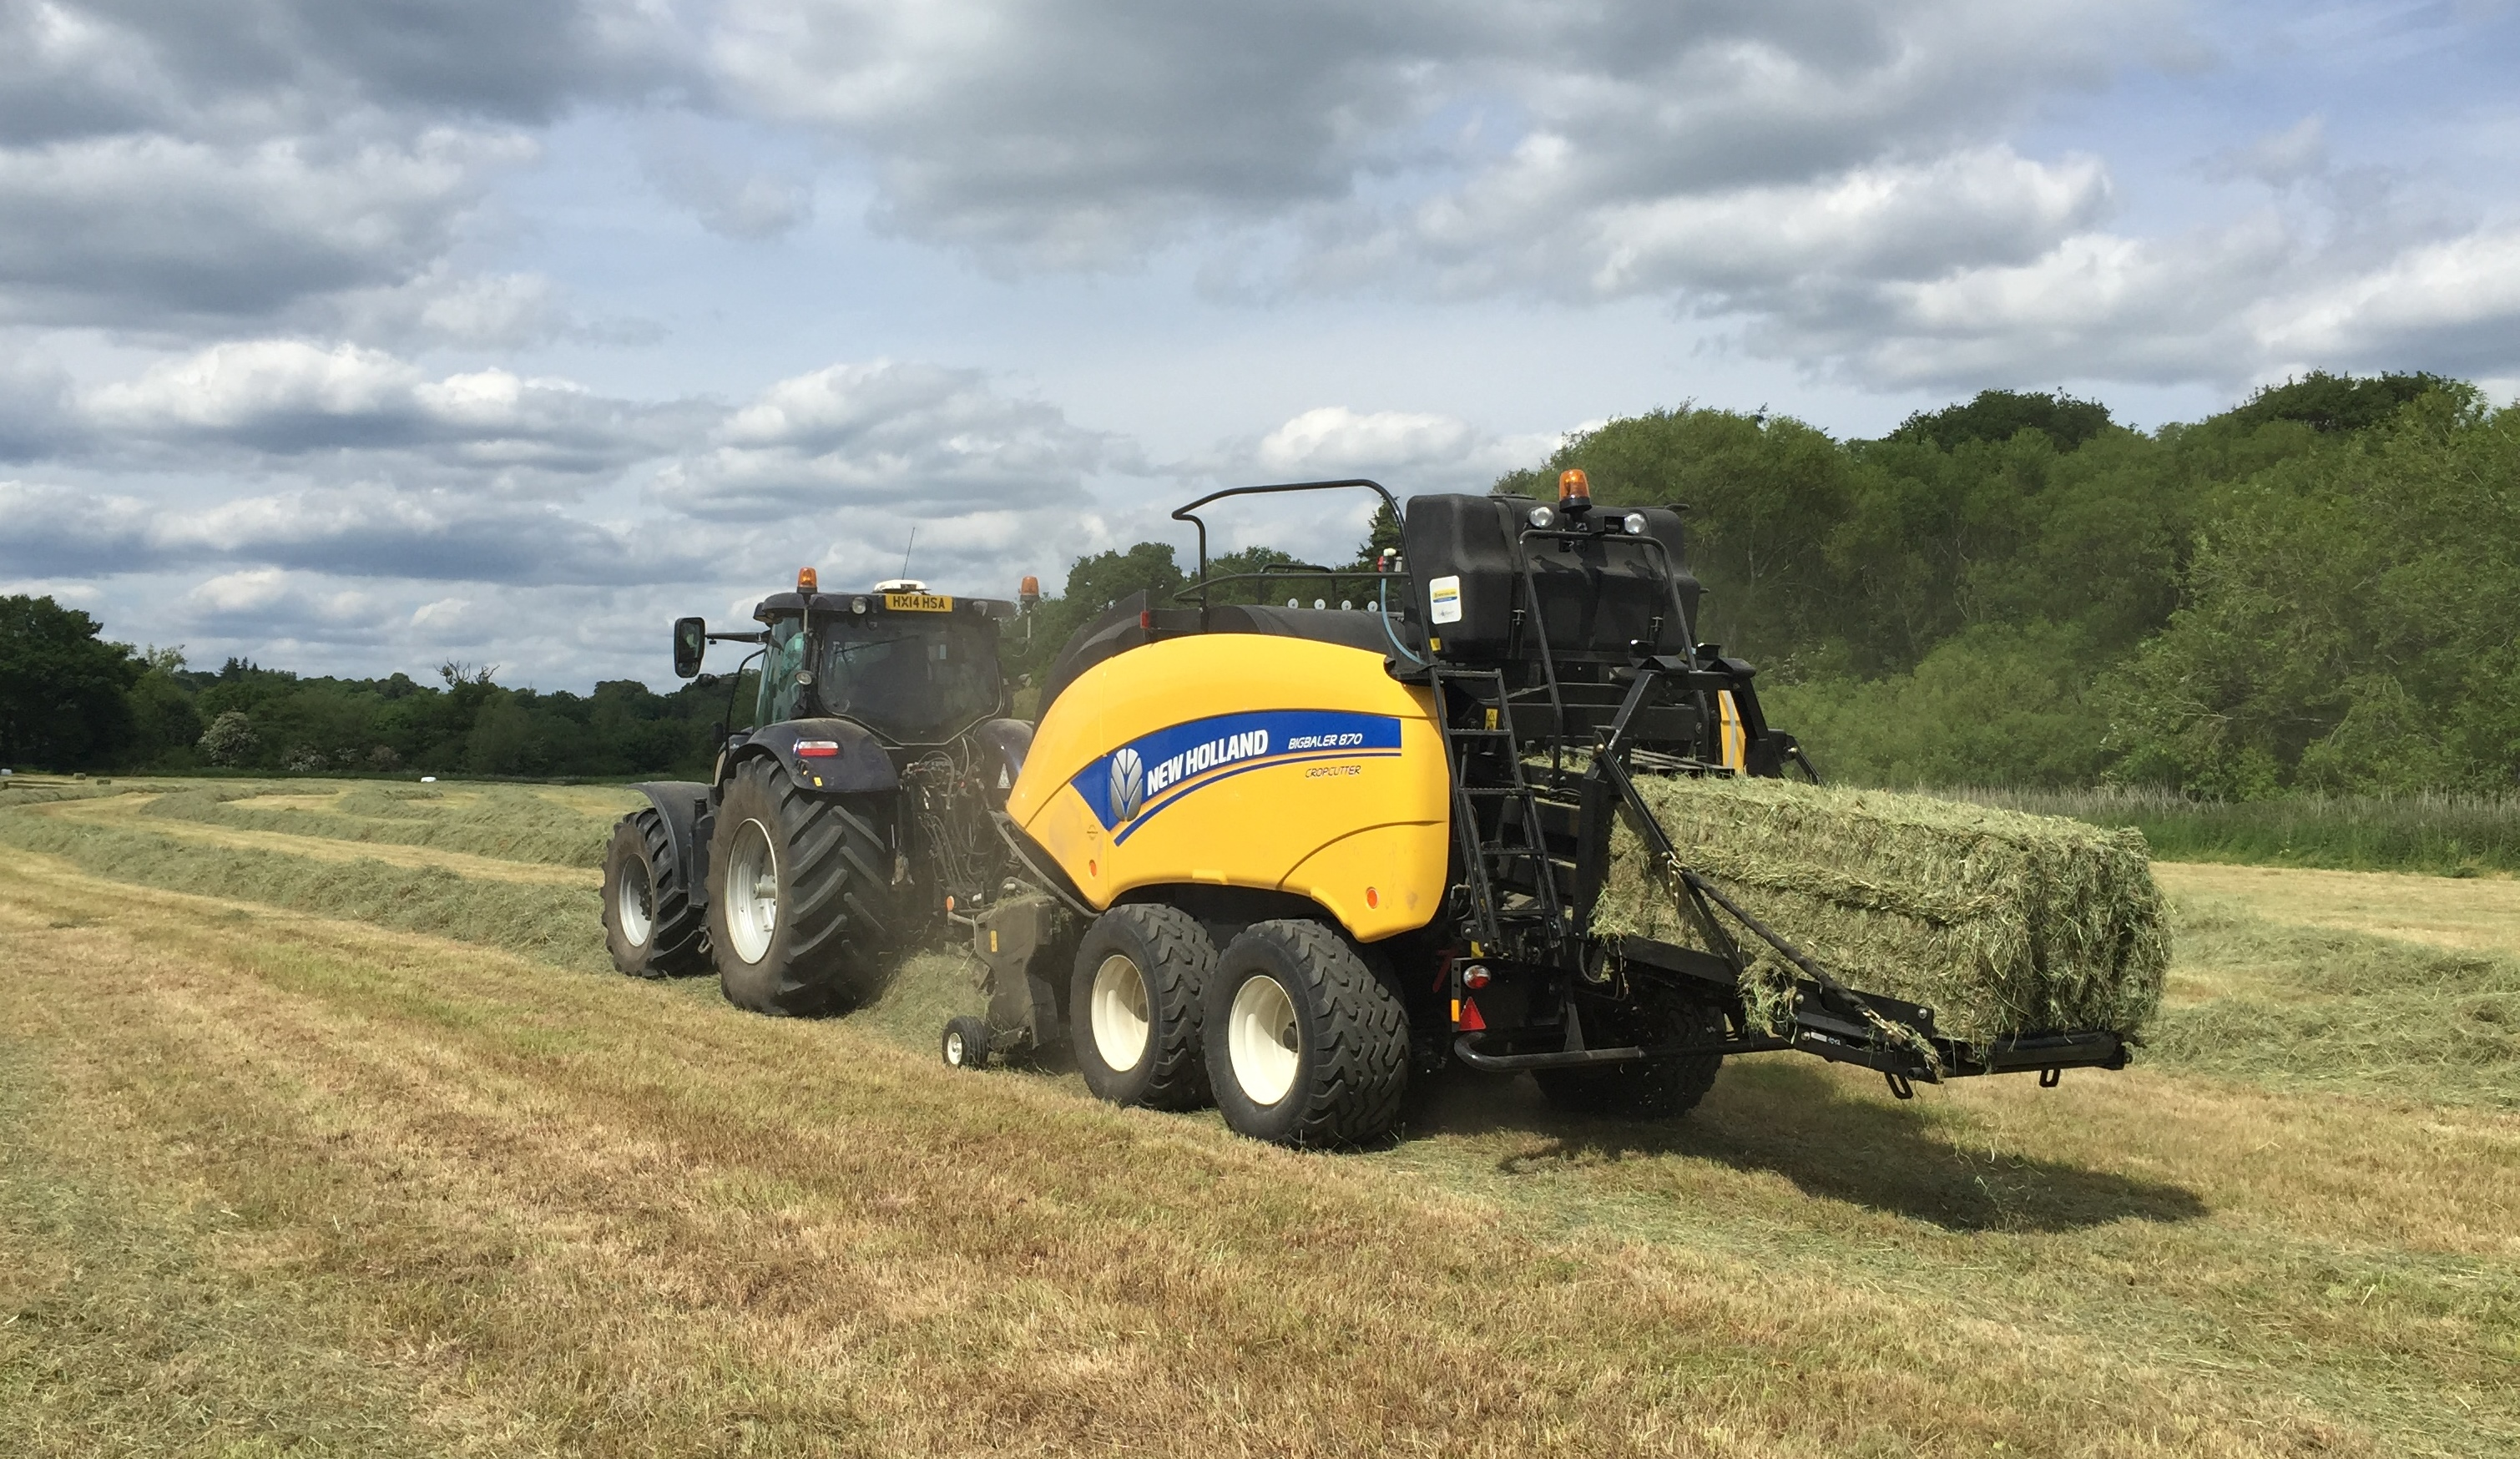 New Holland CropSaver hay baling